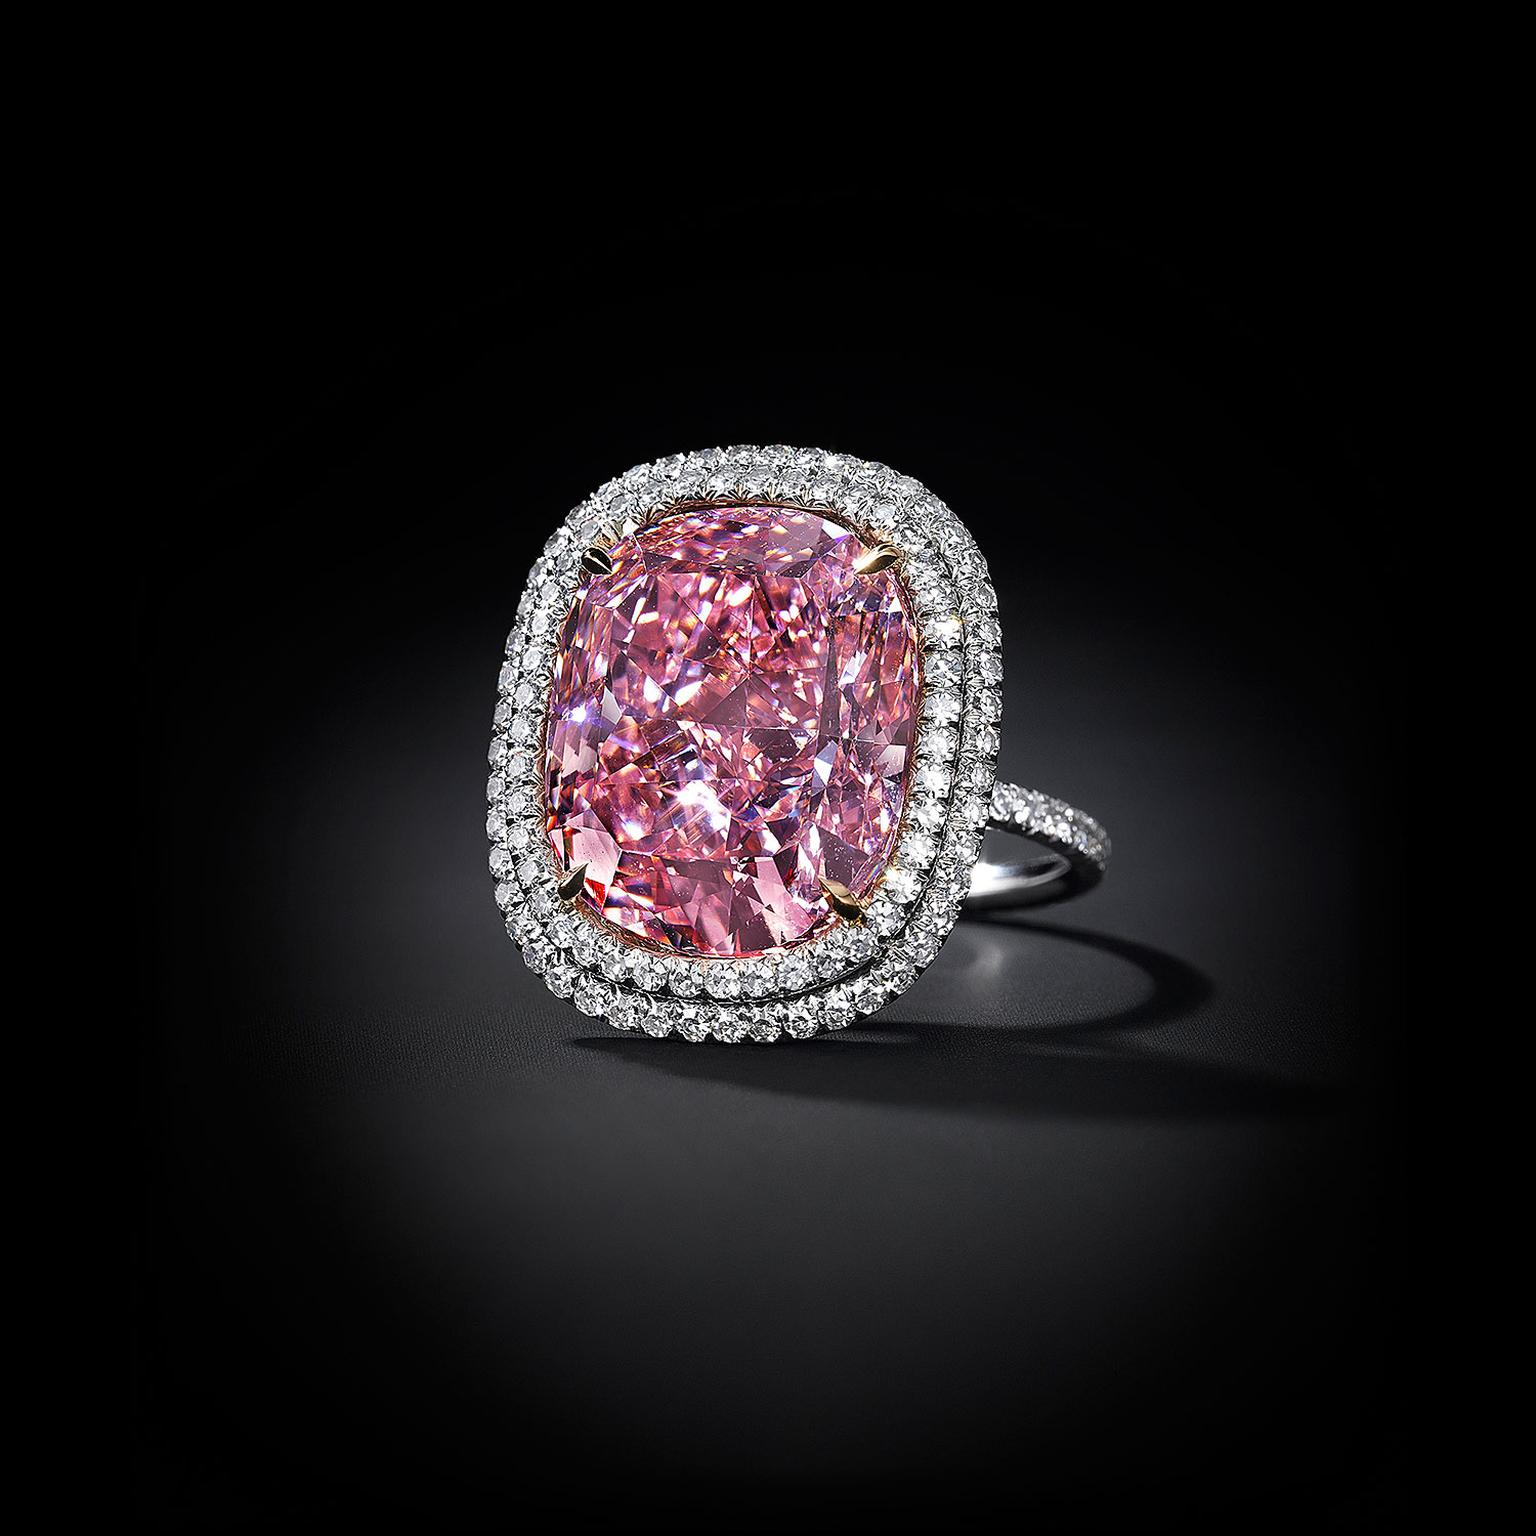 Pink Diamond Engagement Ring For Sale